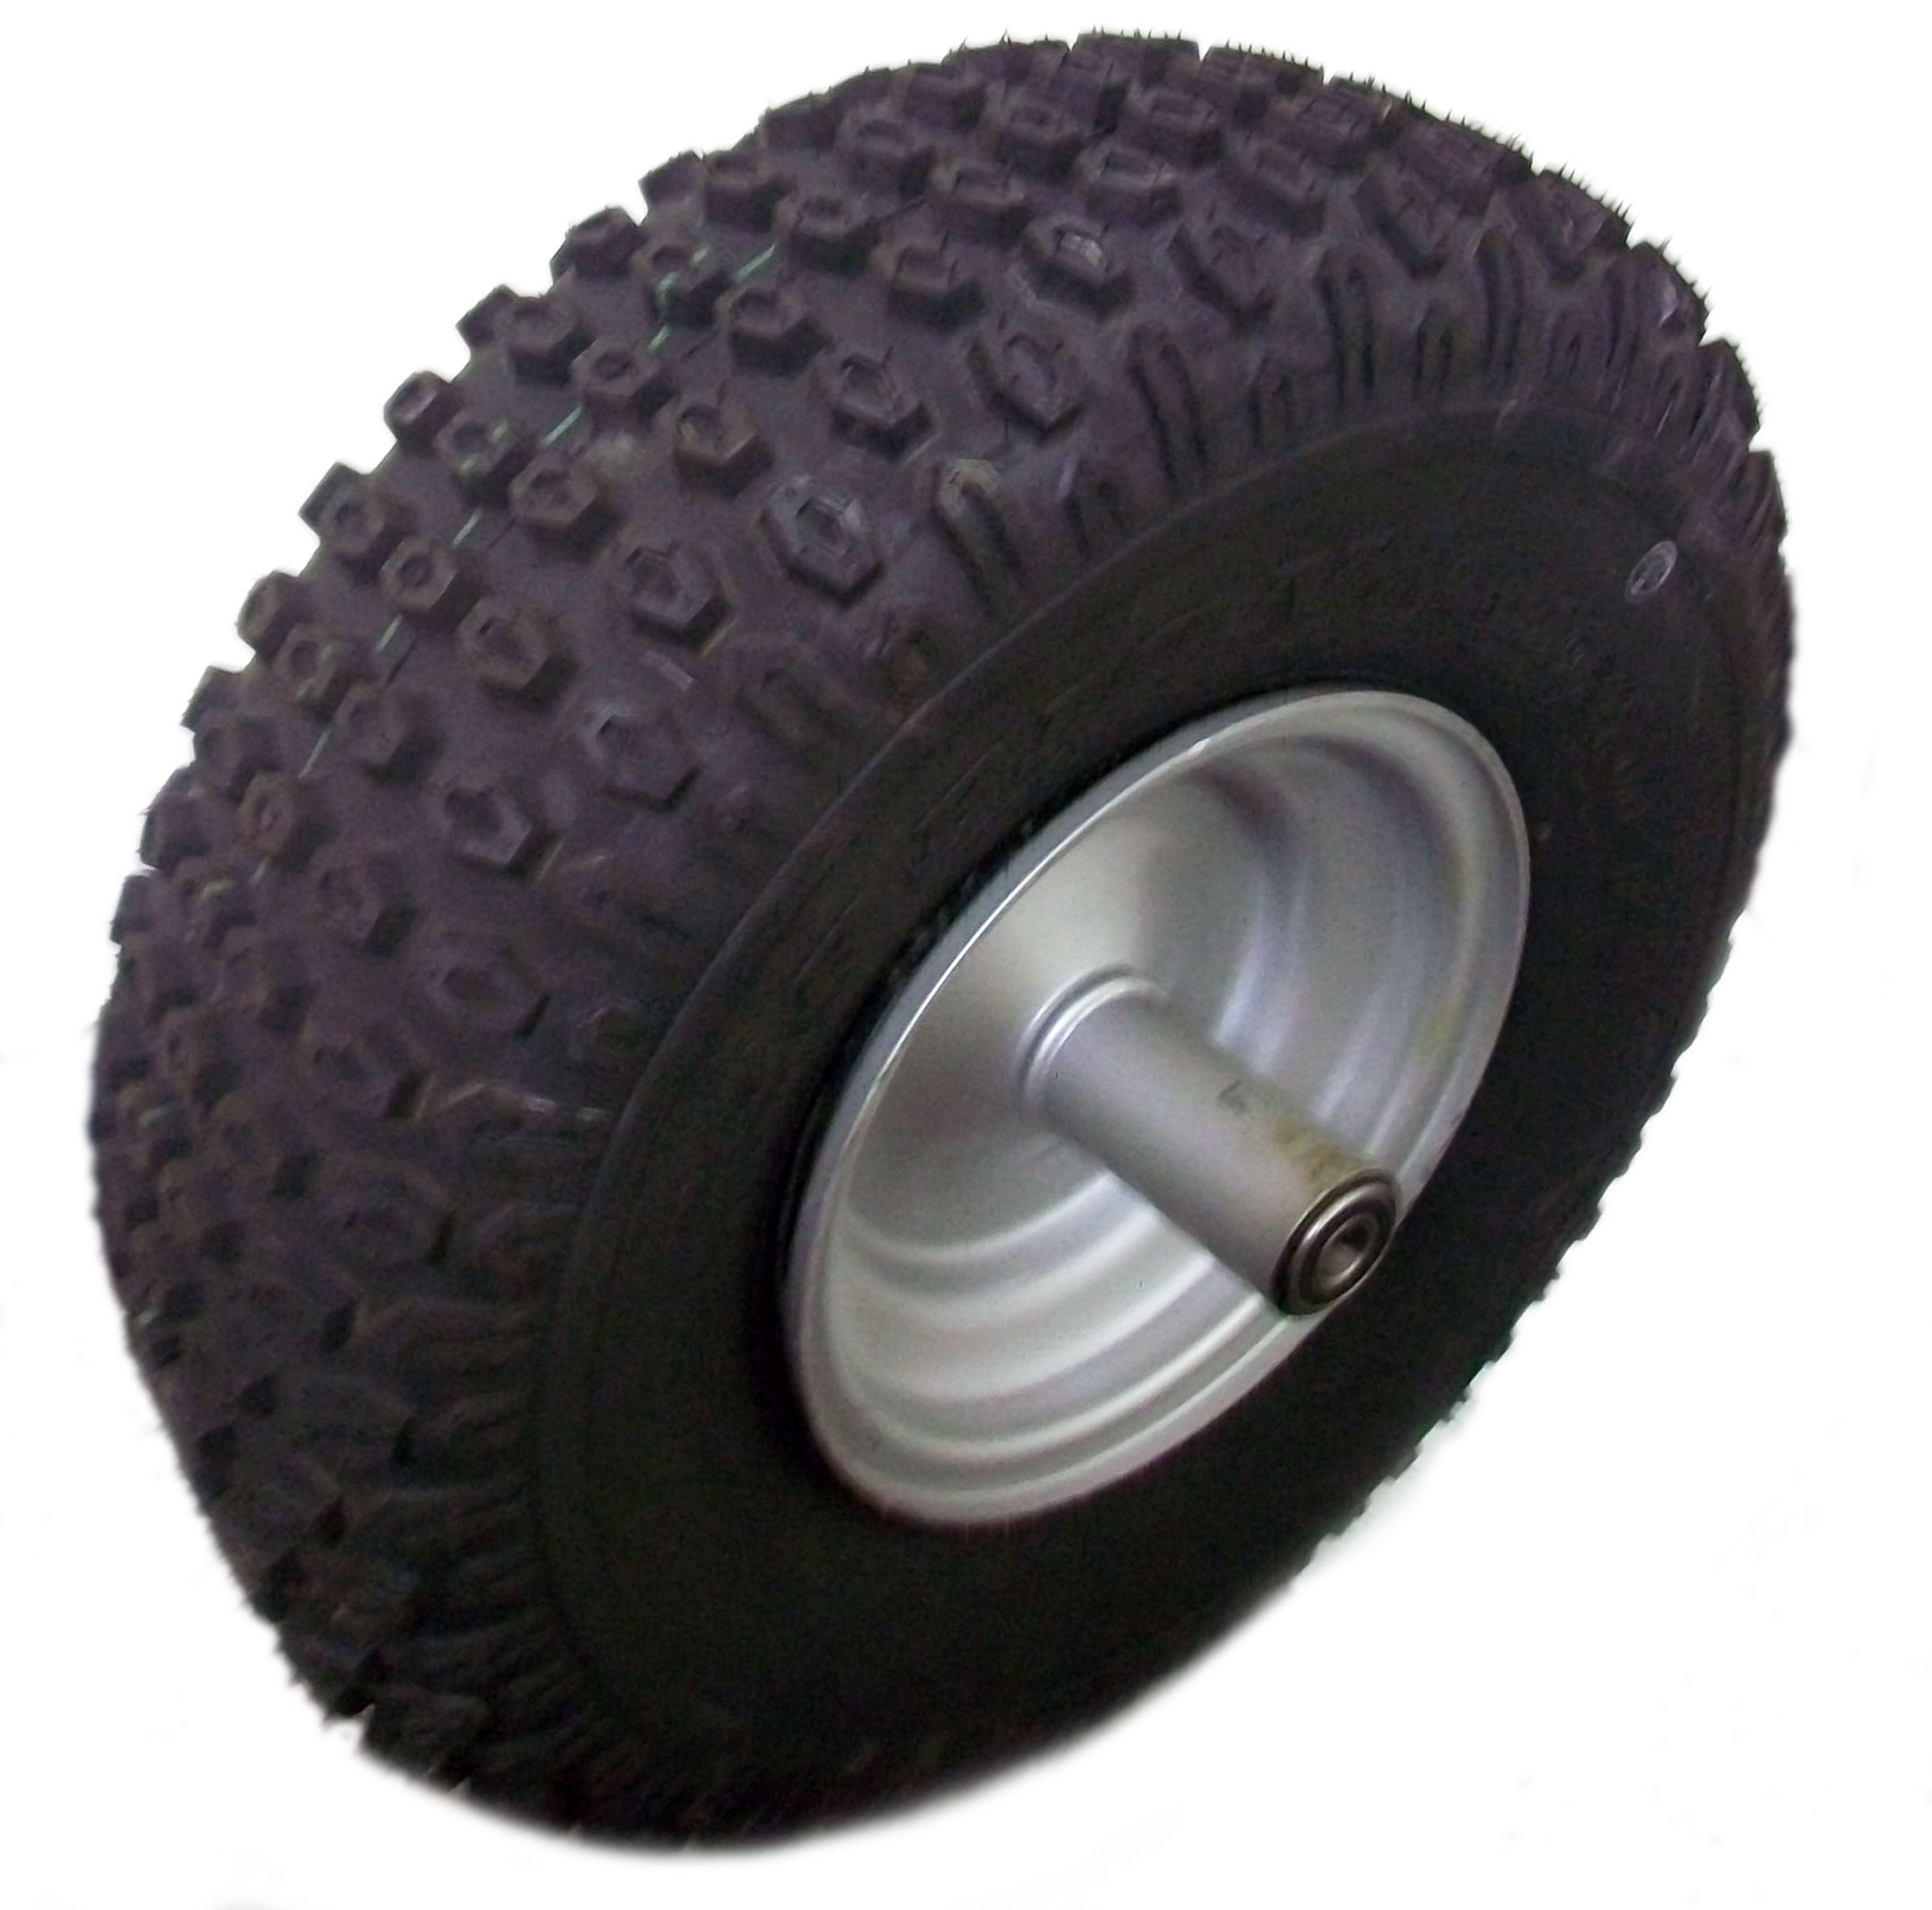 20 X 7 8 Knobby Tire With Rim For Mini Bike Front 01421 Bmi Karts And Parts